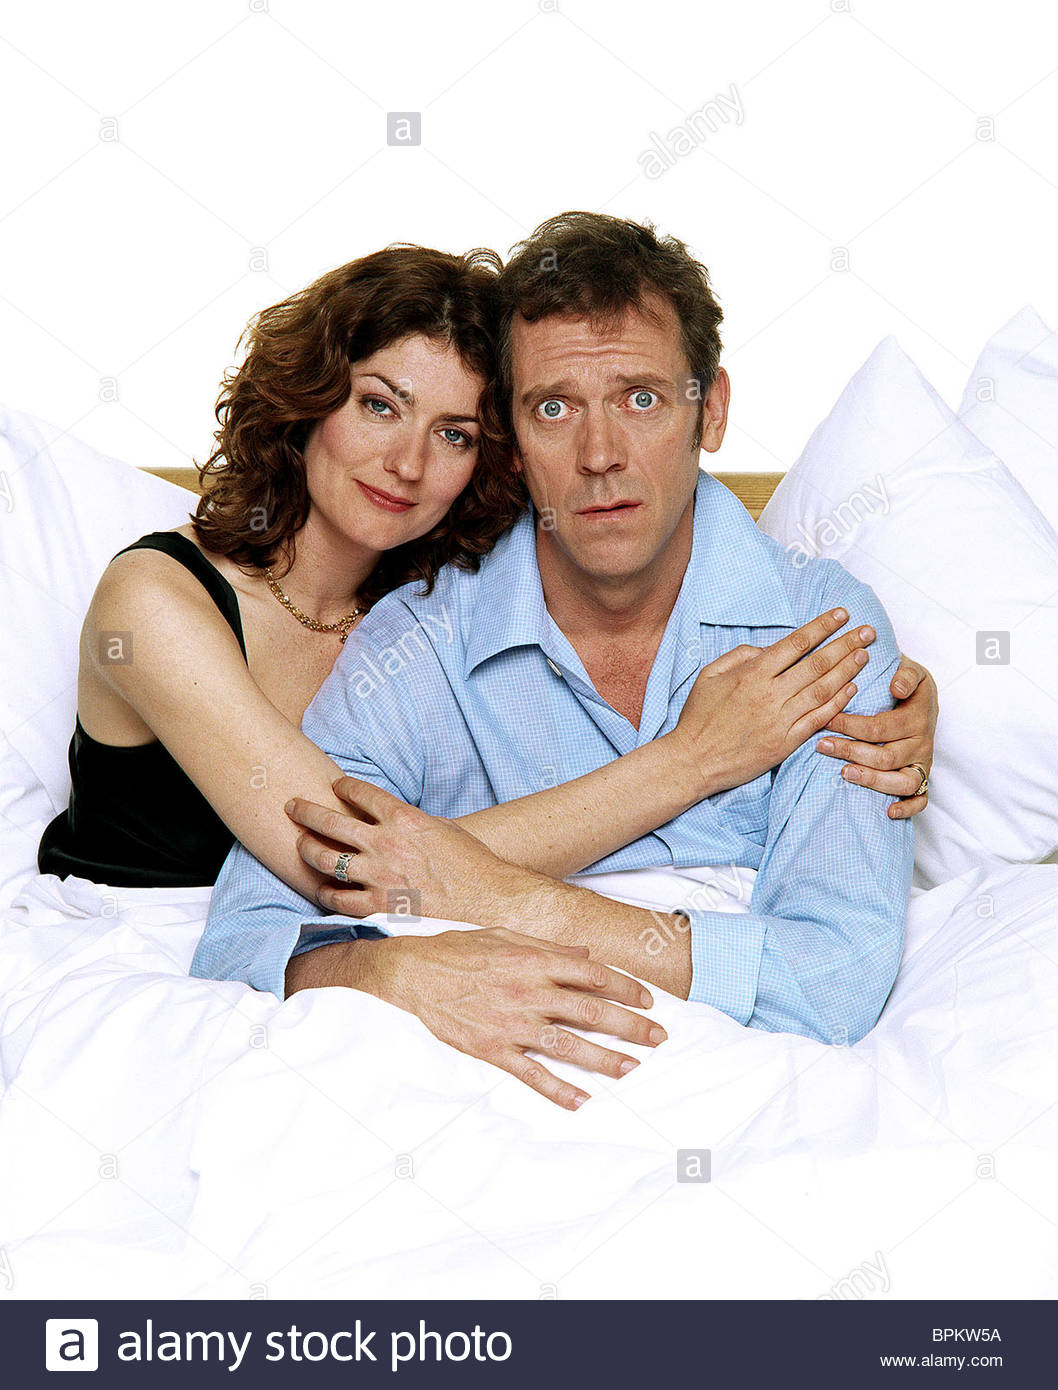 ANNA CHANCELLOR & HUGH LAURIE FORTYSOMETHING (2003) - Stock Image